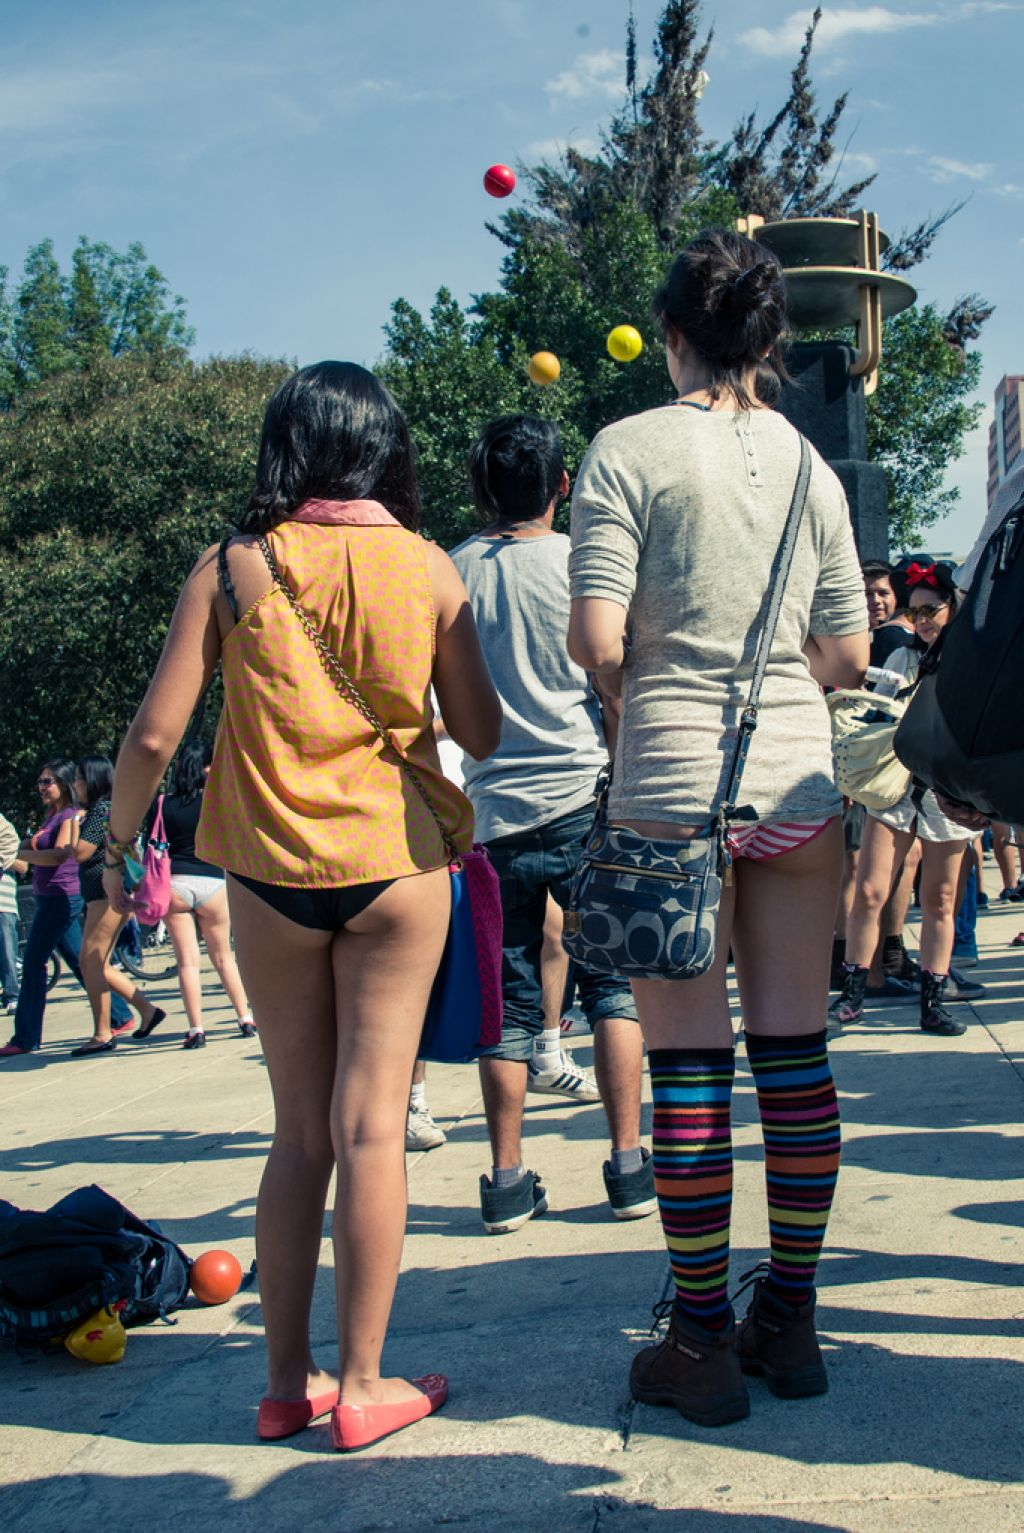 no pants1 No Pants Day in Mexico City